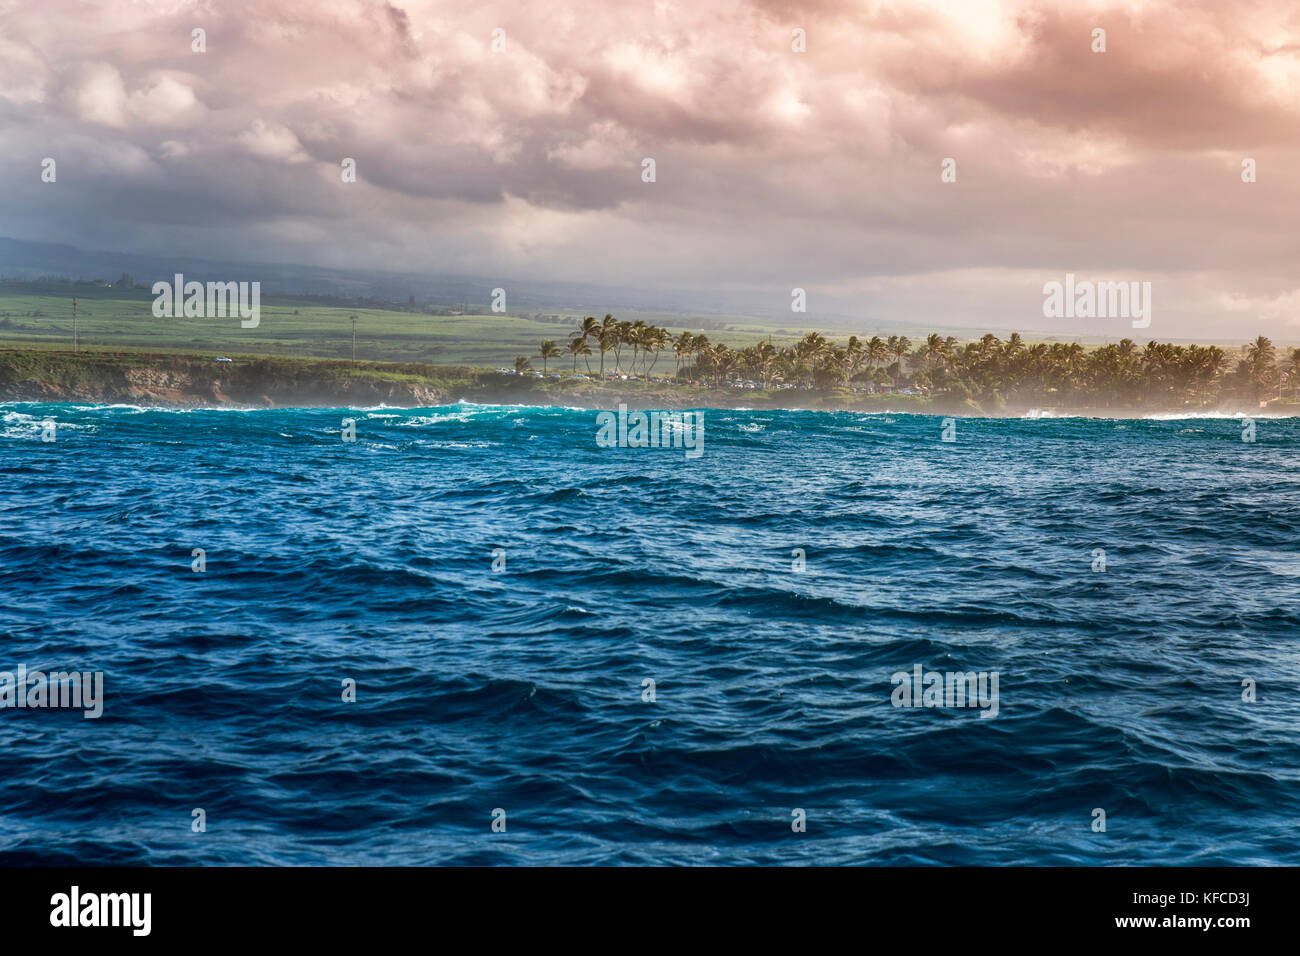 USA, HAWAII, Maui, Jaws, the view seen from out at Peahi on the Northshore - Stock Image